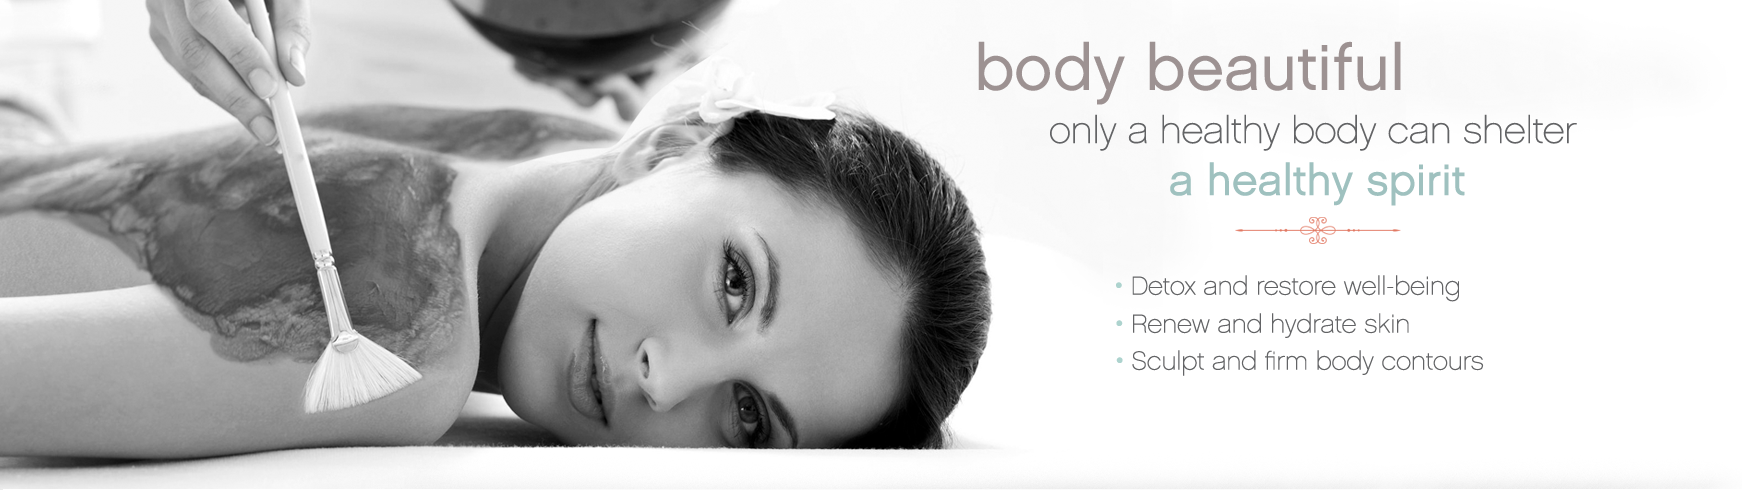 Body Beautiful Treatments at La Bella Spa